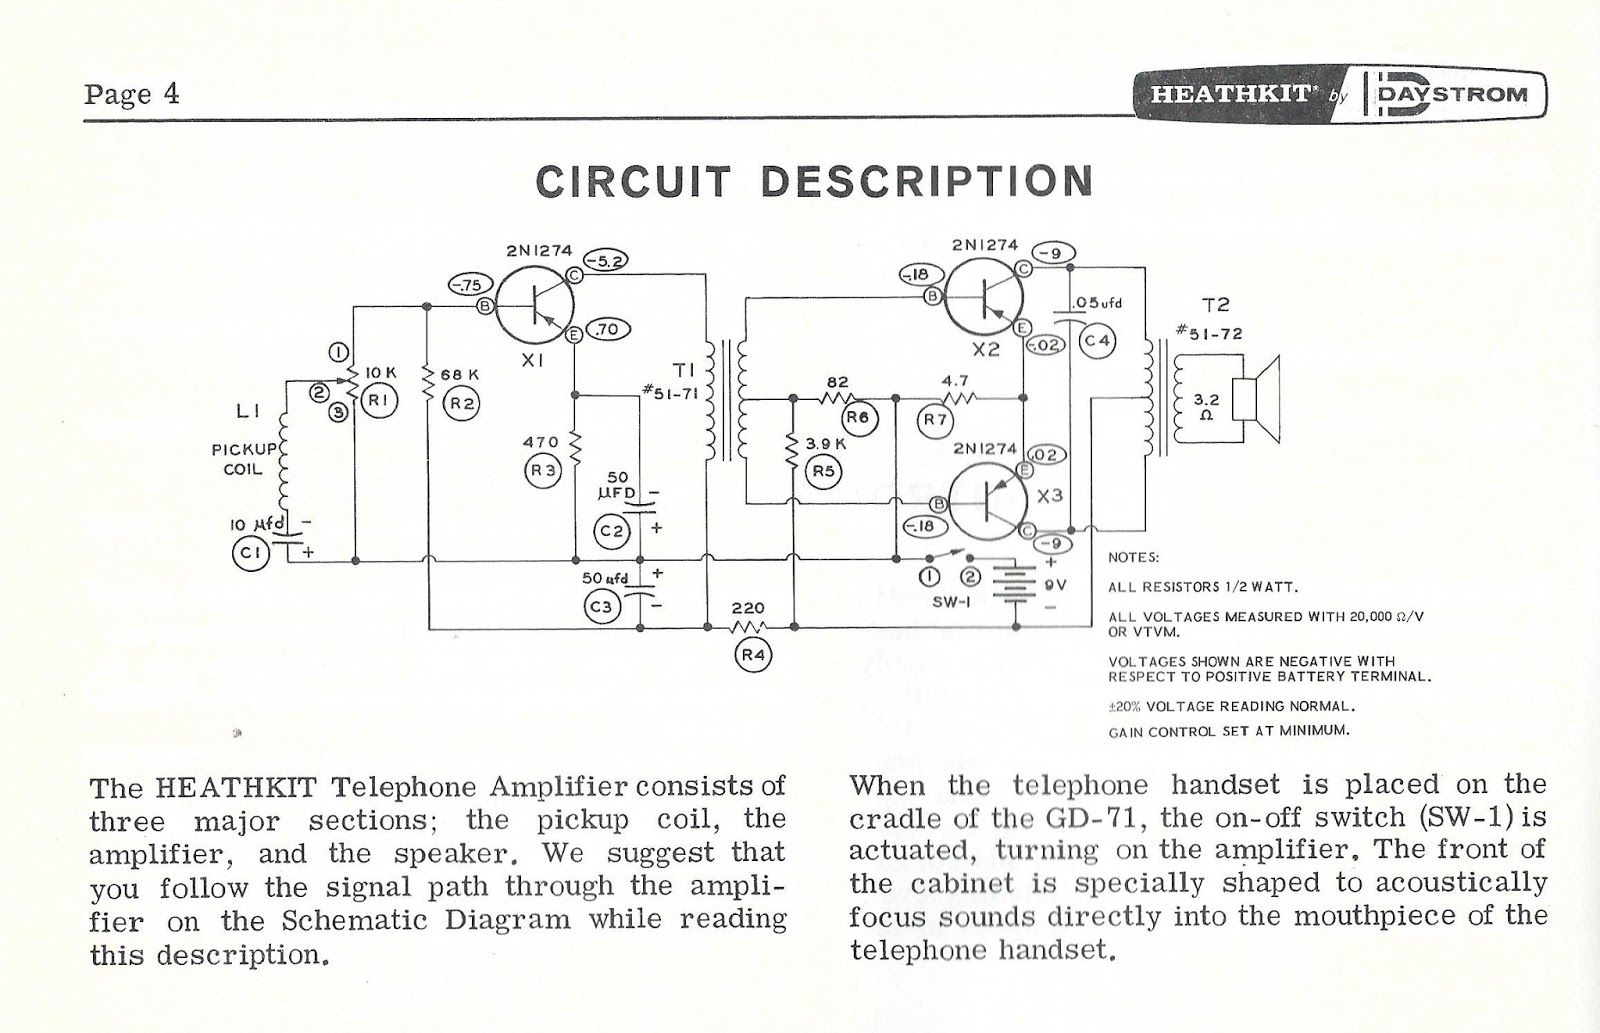 medium resolution of all of the telephone amplifiers had the typical circuit design except for ampliphone and heathkit amps